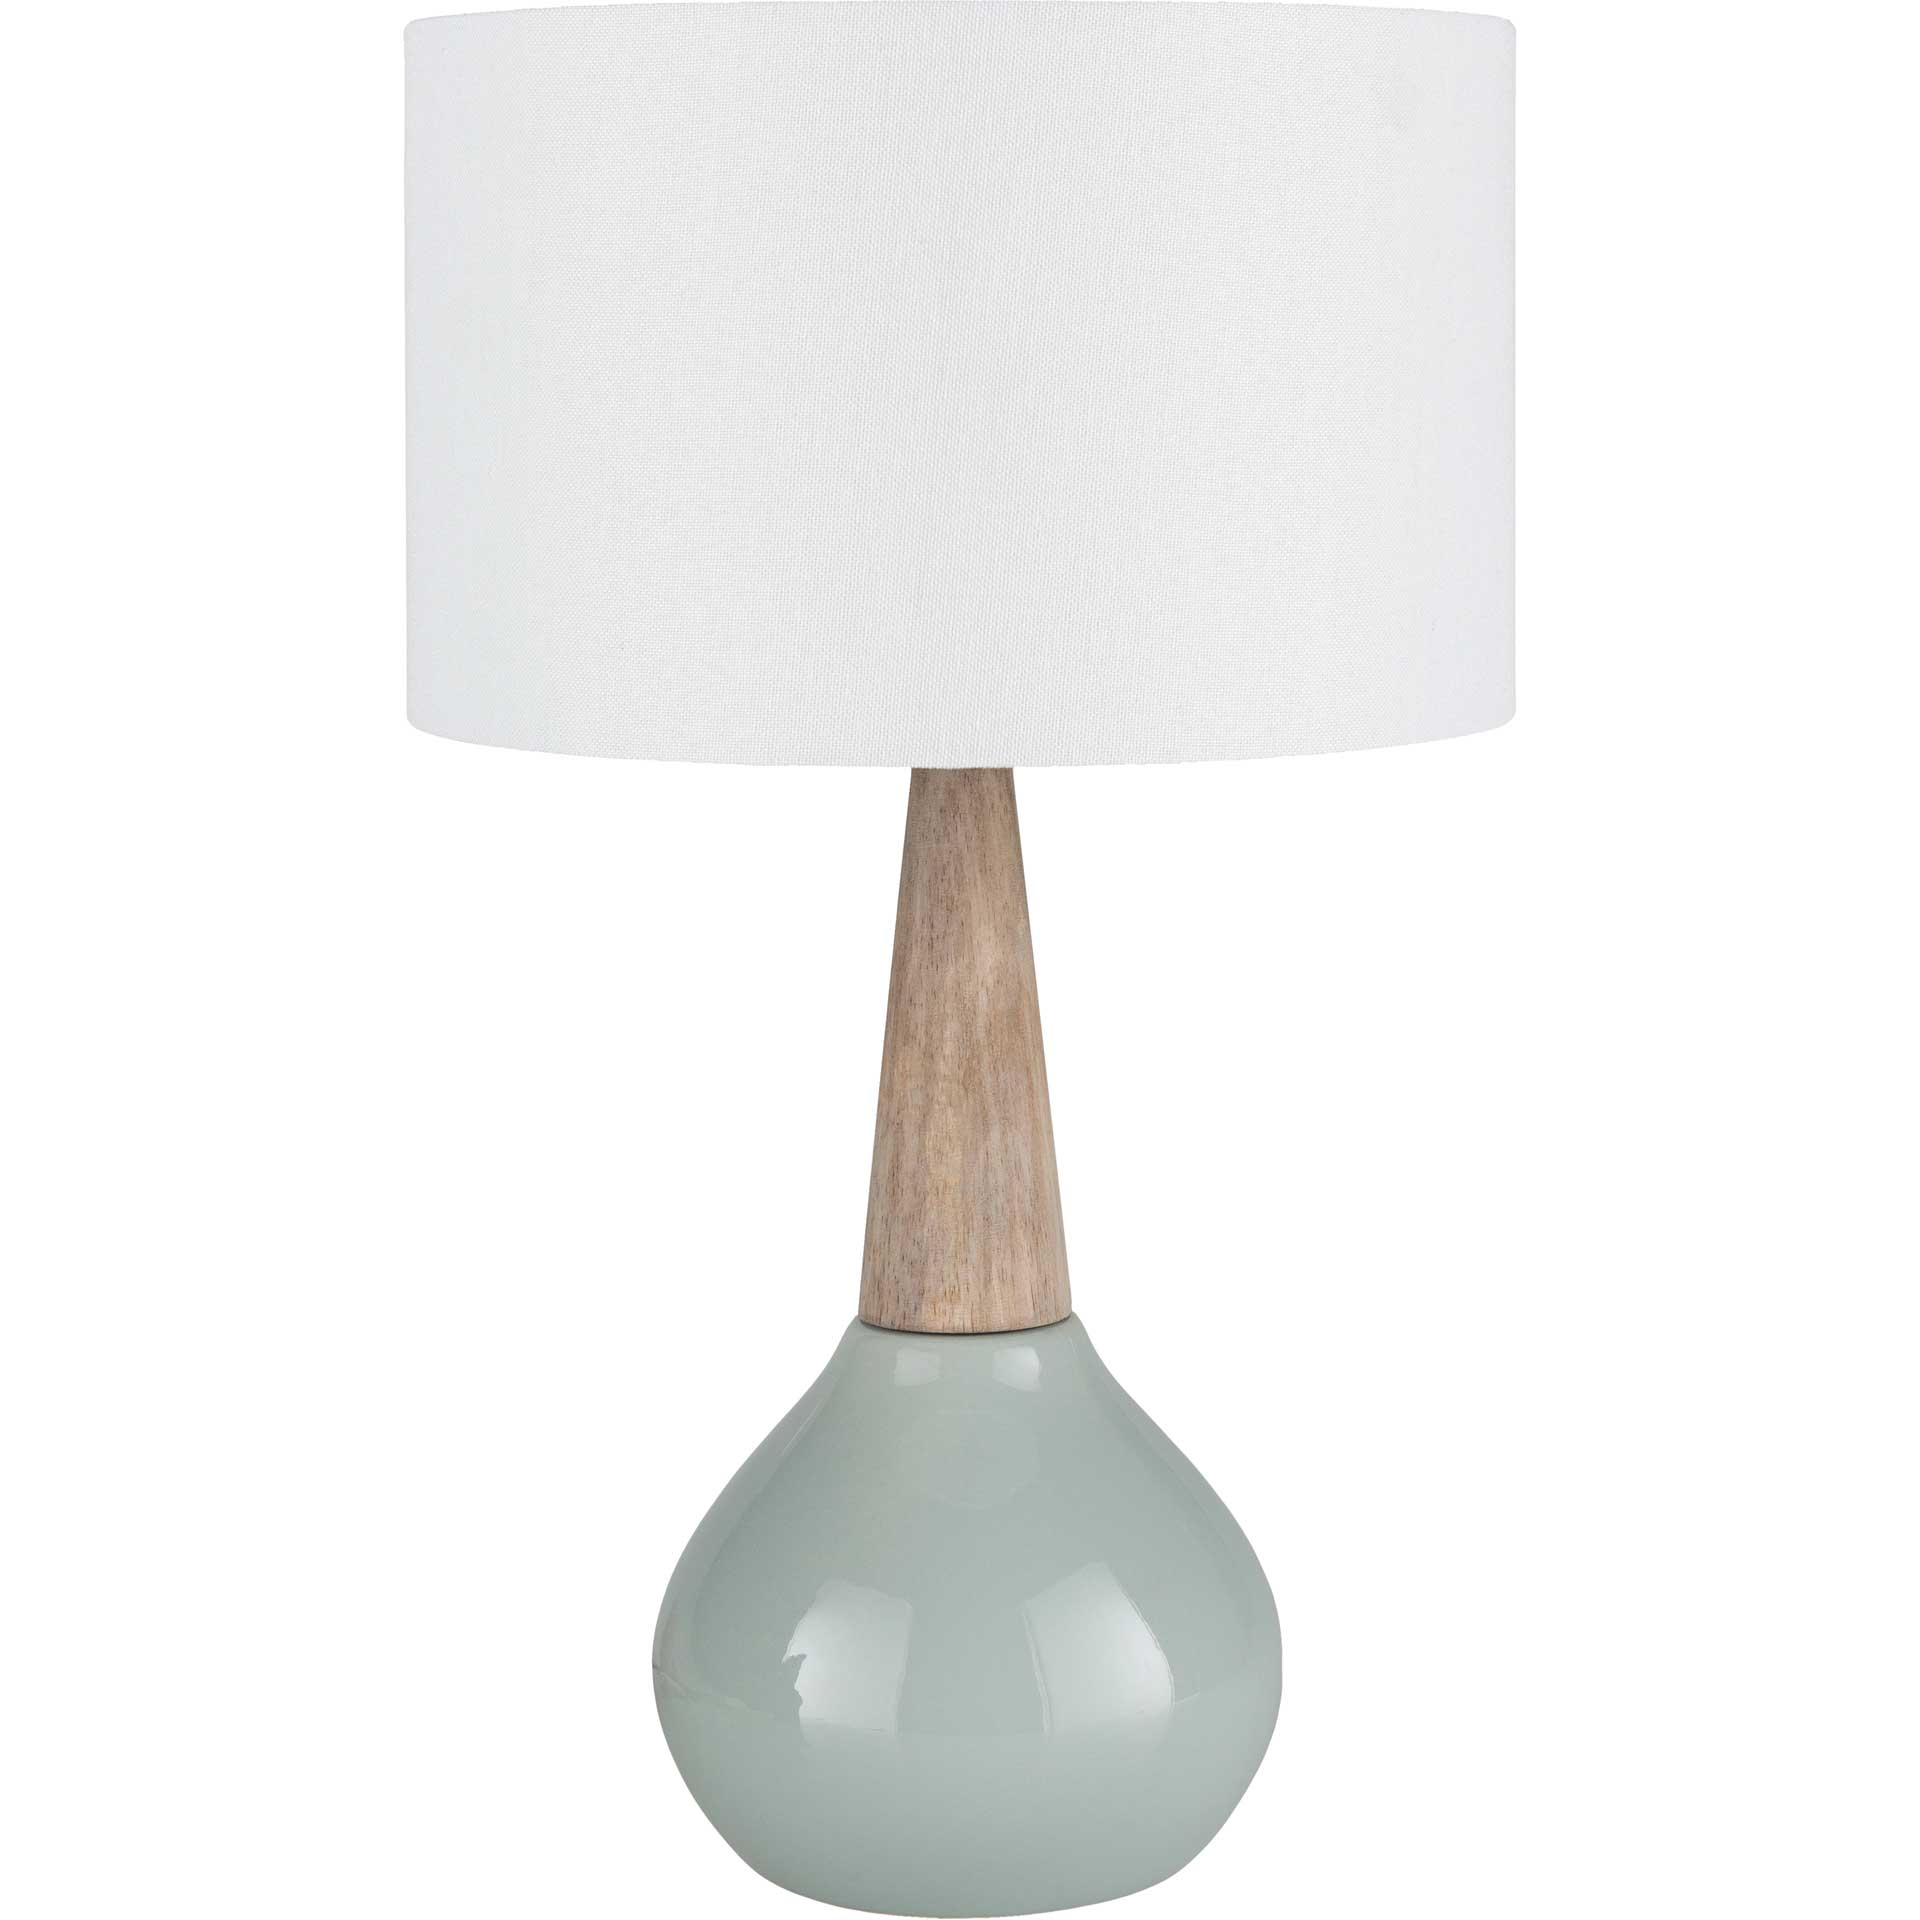 Keaton Table Lamp Pale Blue/White